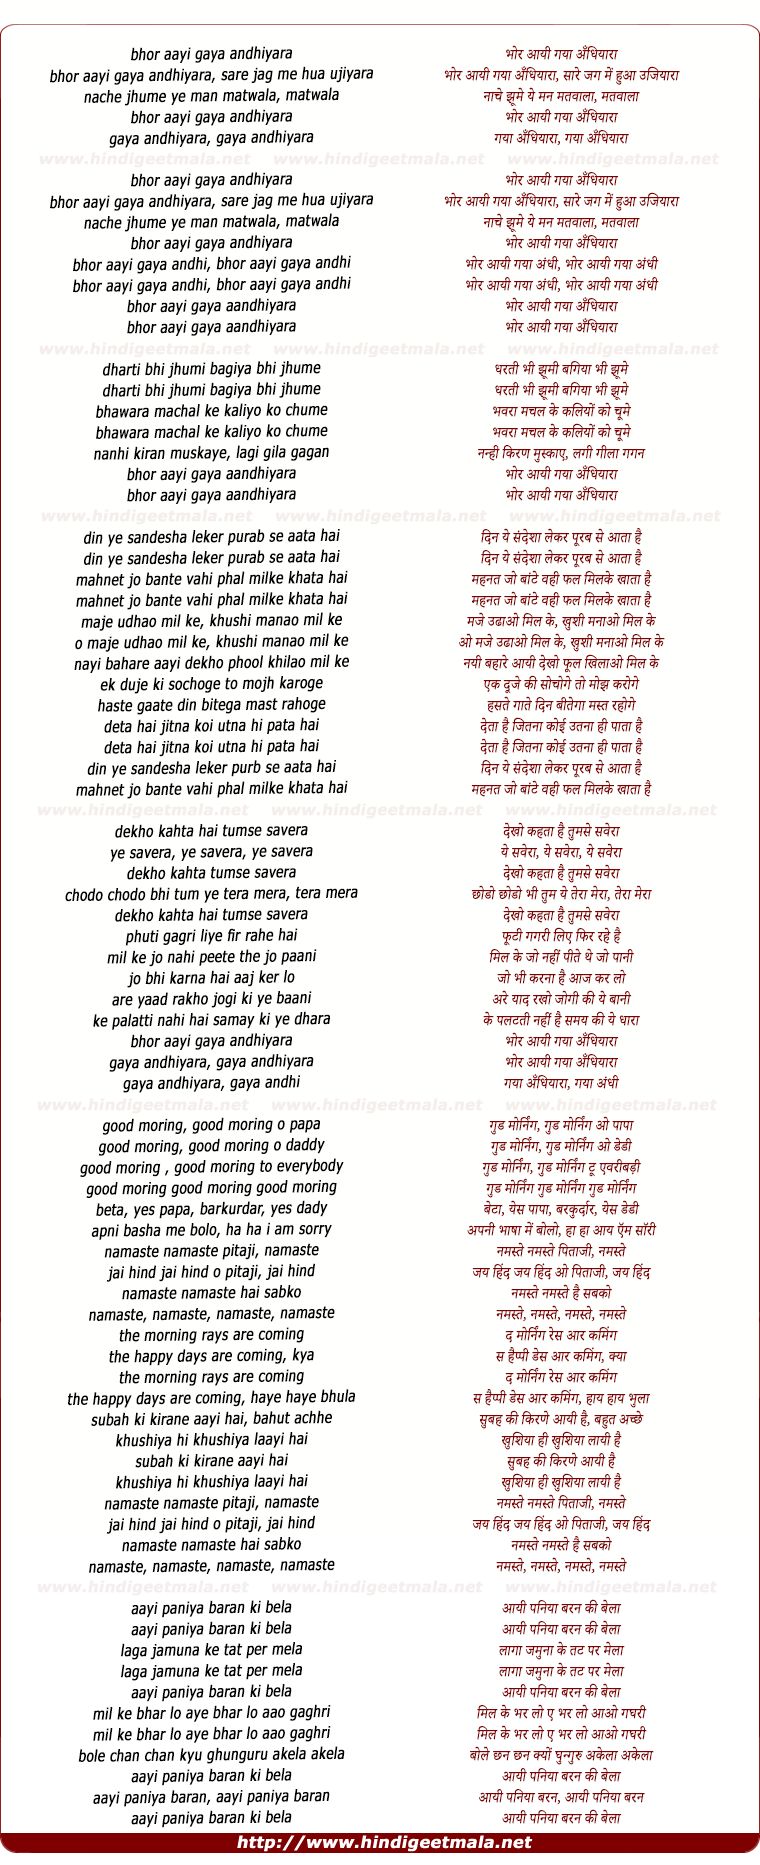 lyrics of song Bhor Aayee Gayaa Andhiyaaraa